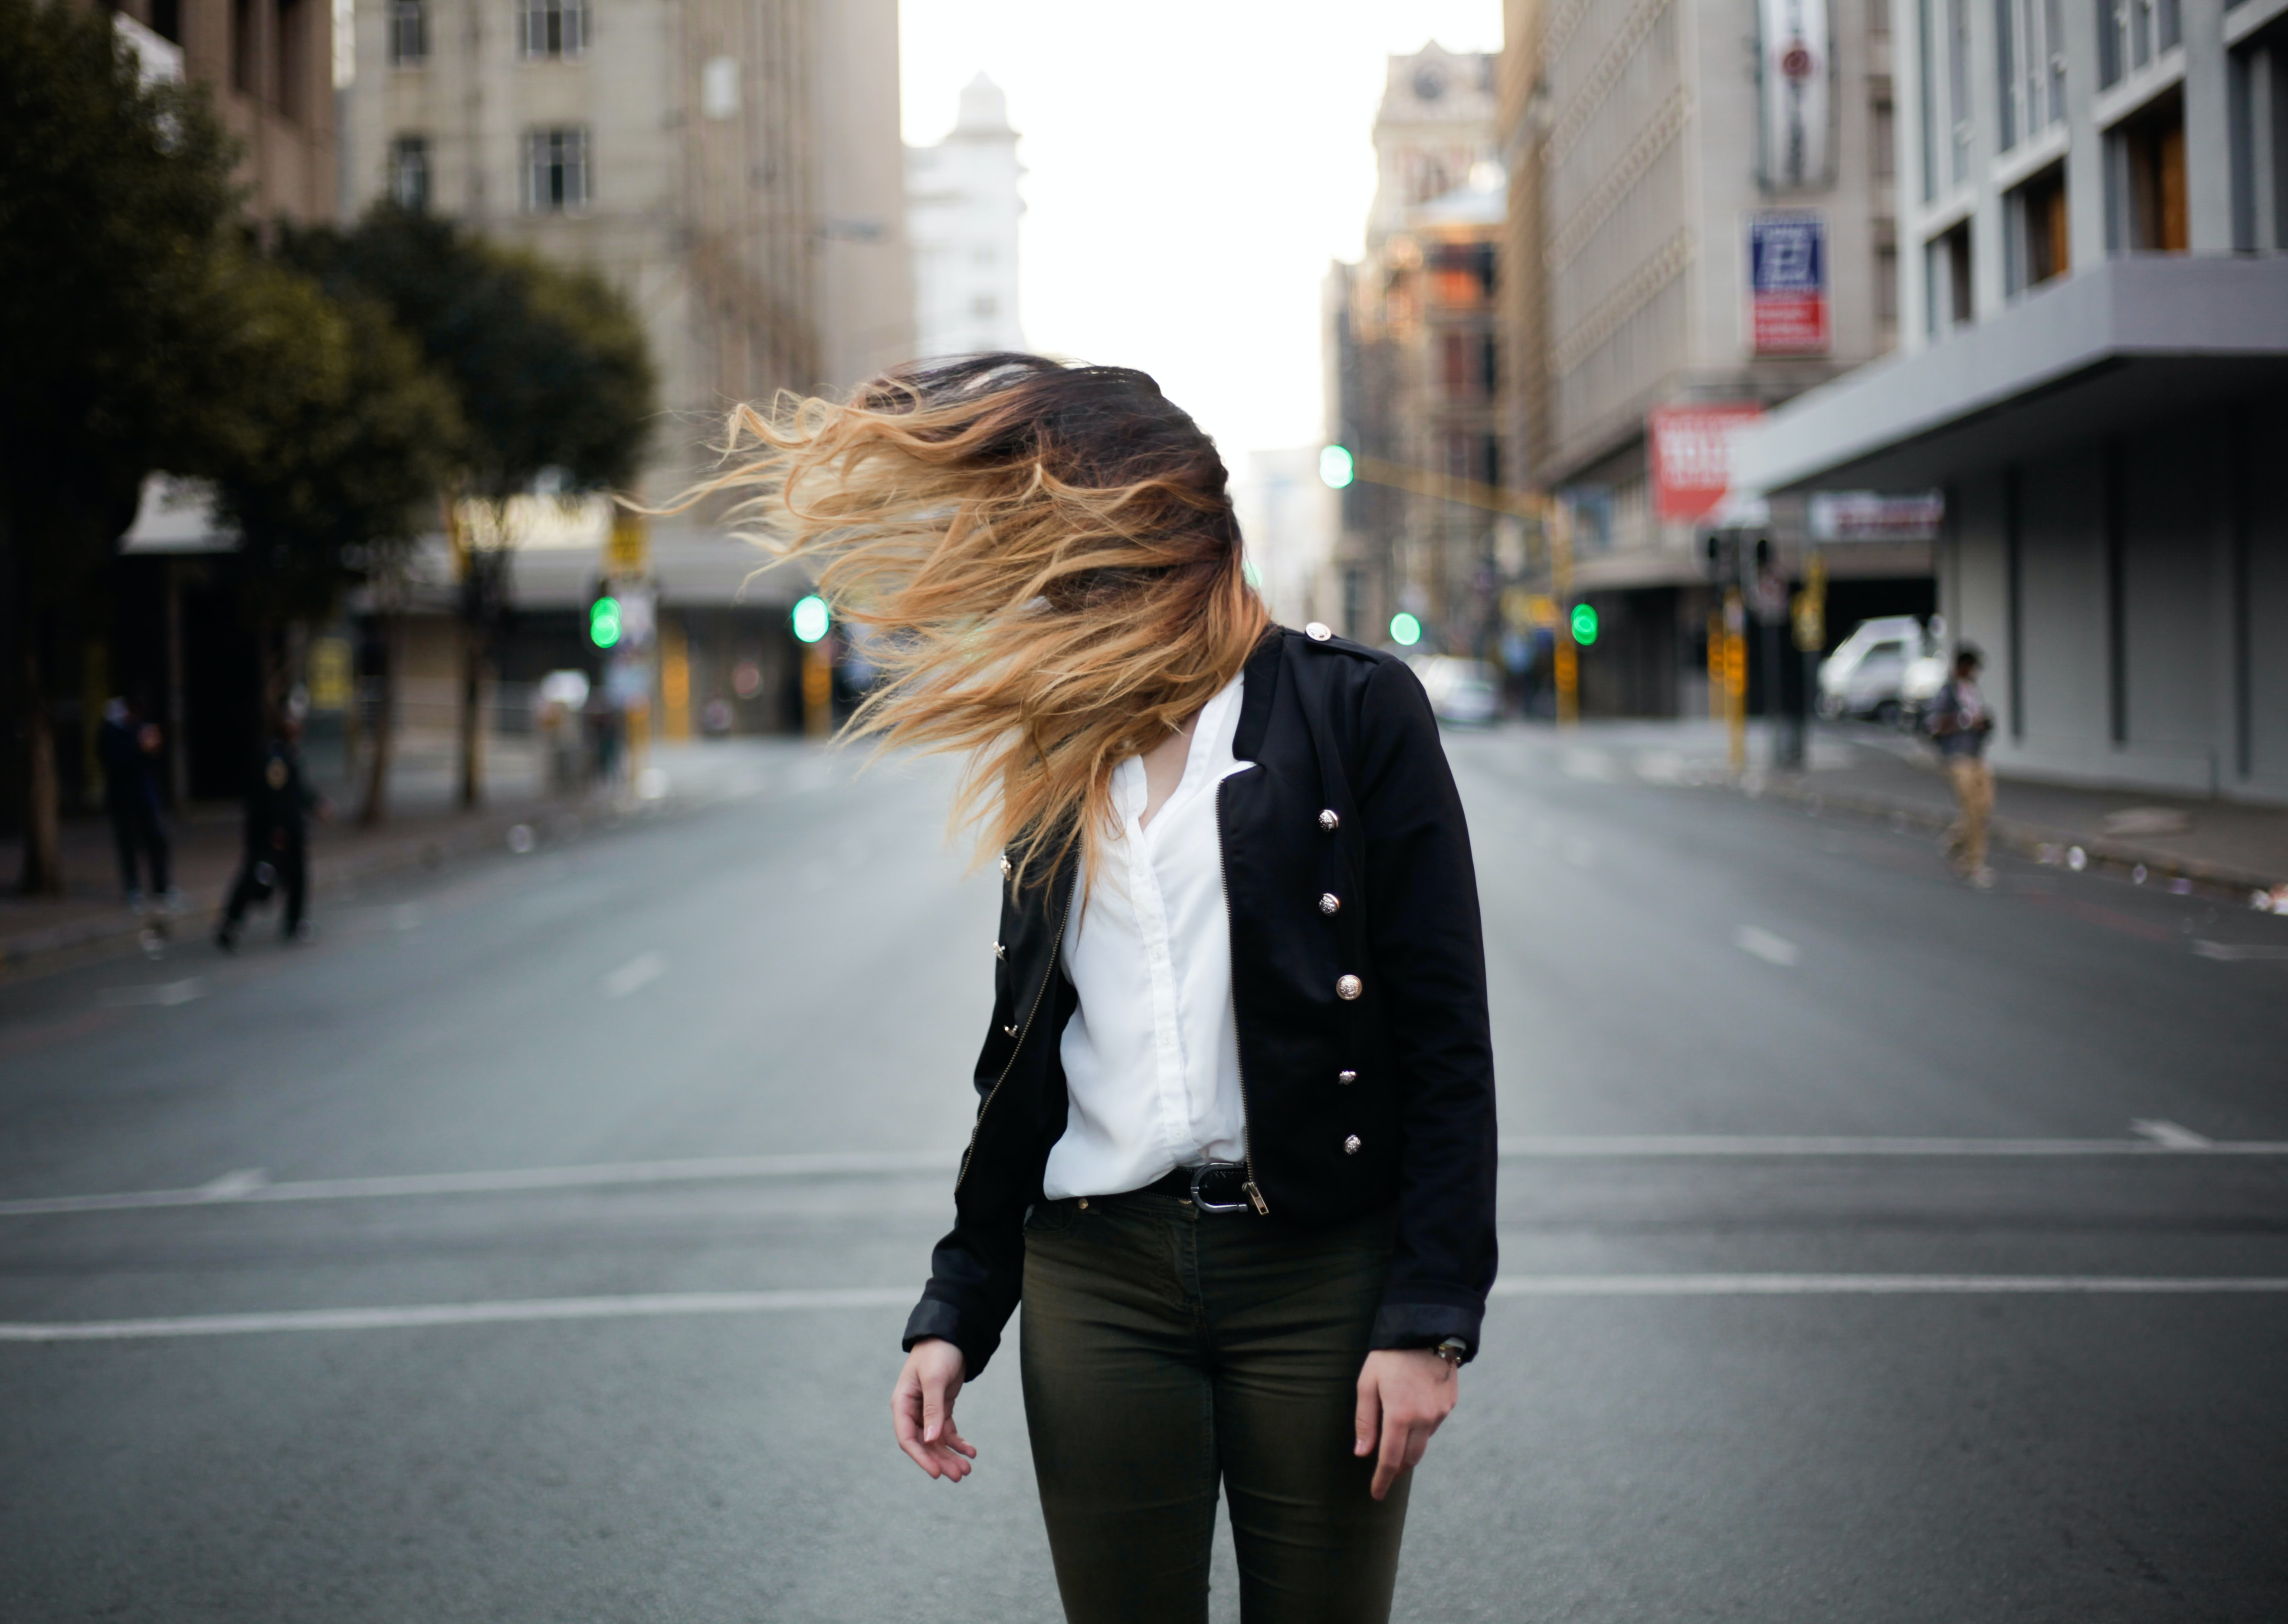 A woman turning her head in the middle of the street and covering her face with her hair.